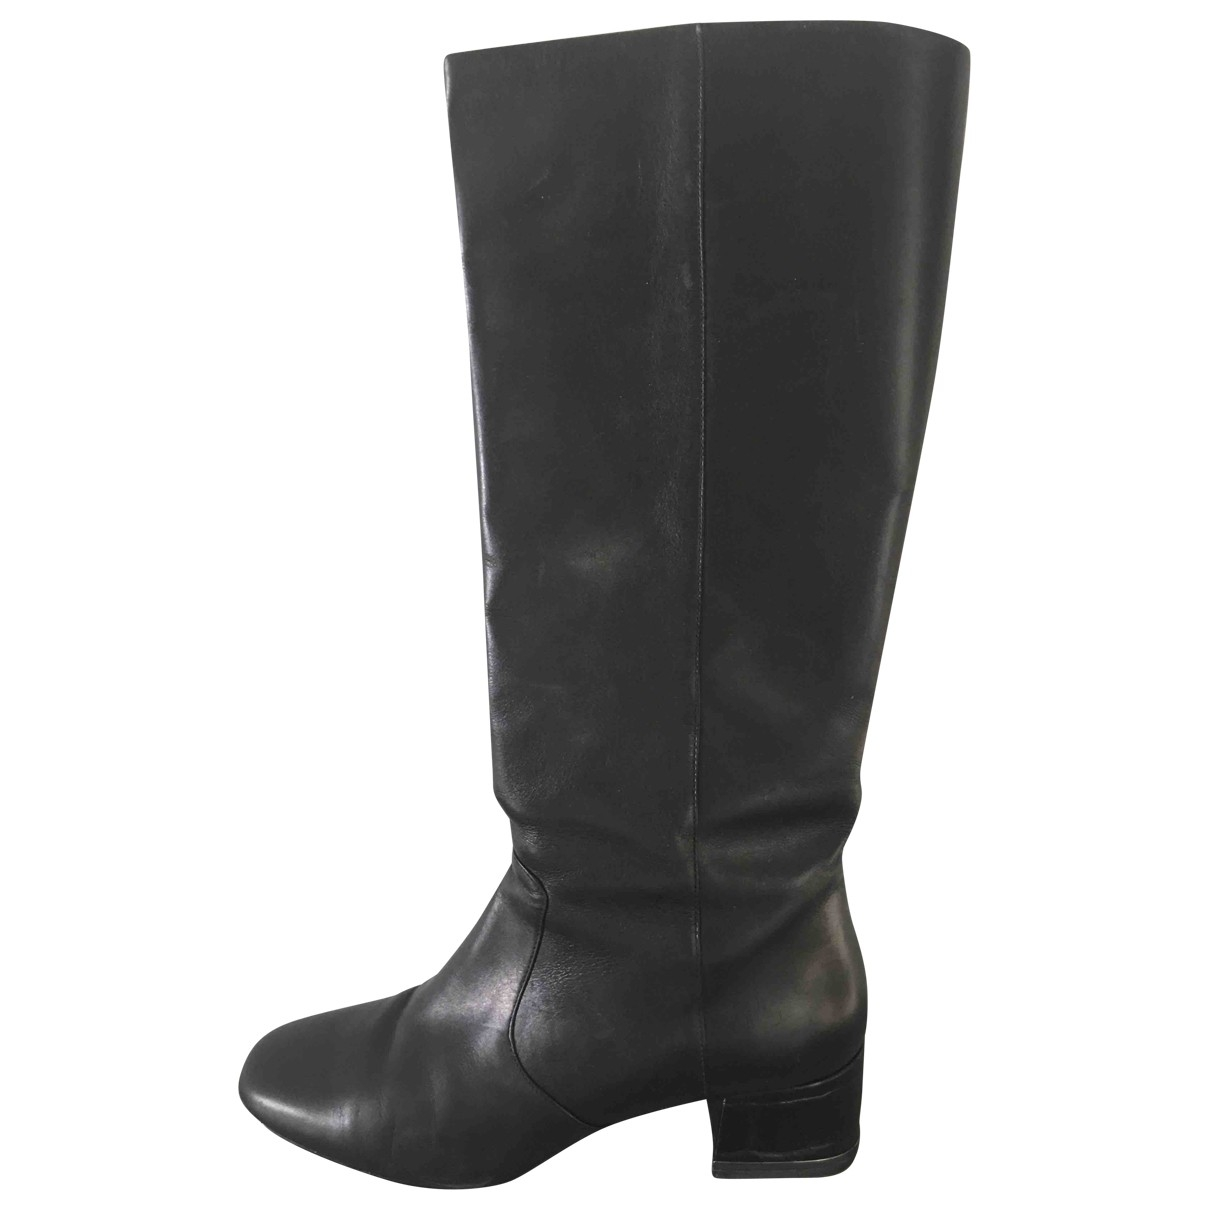 Michael Kors \N Black Leather Boots for Women 38 EU